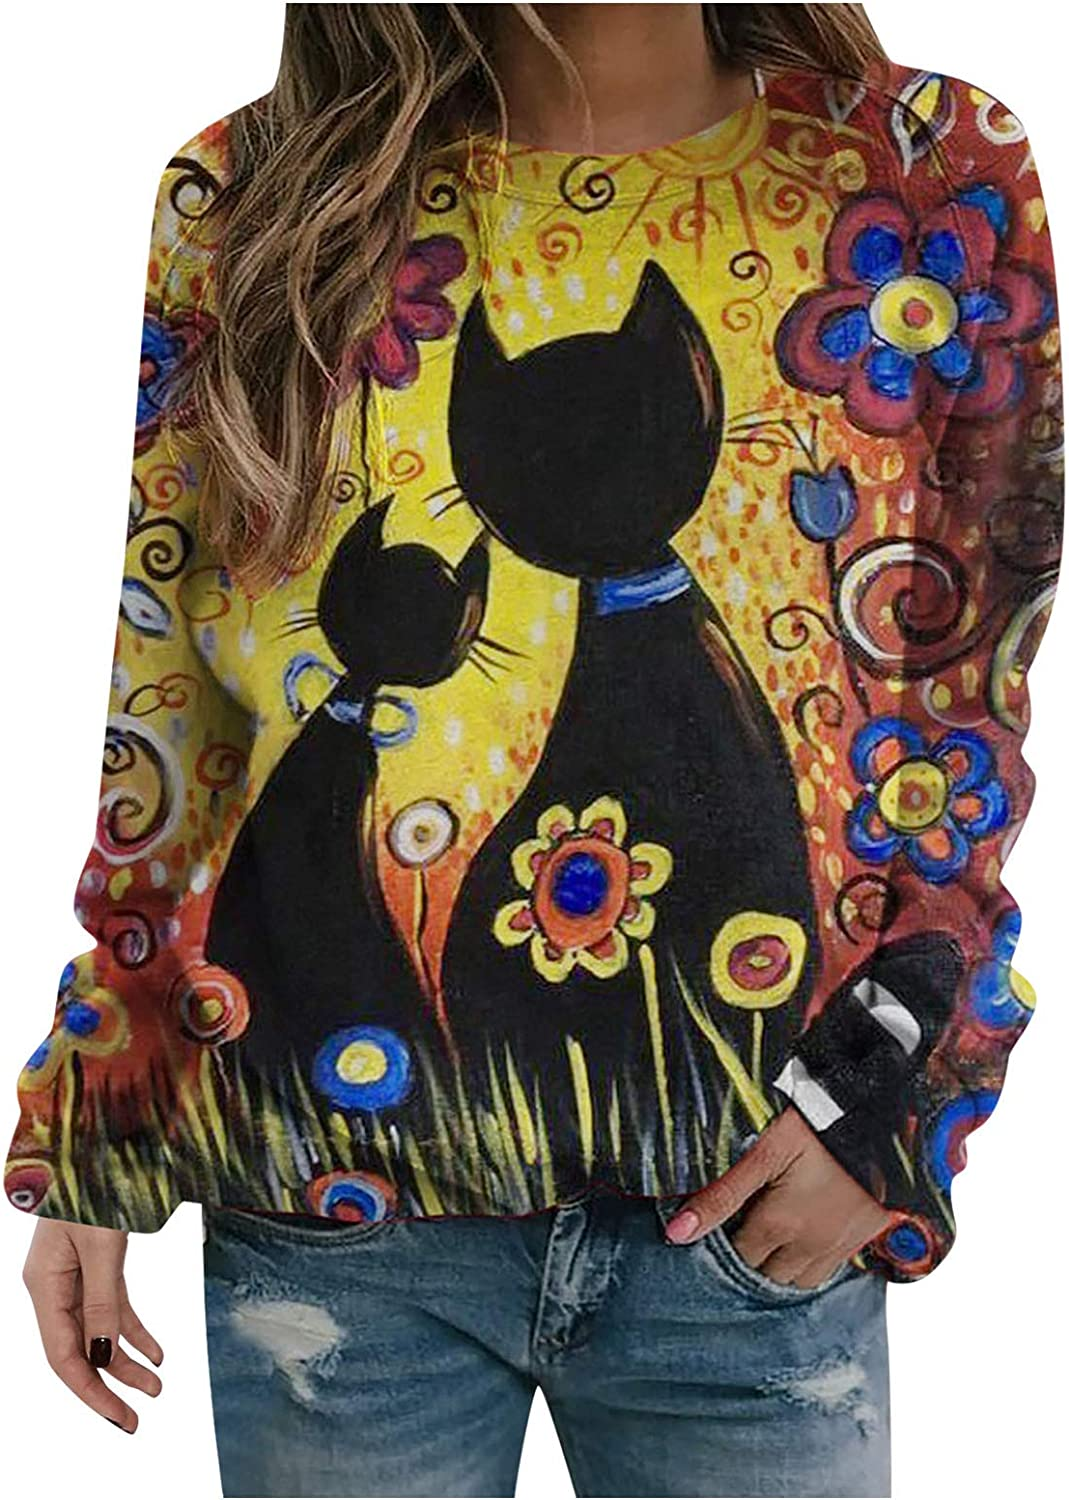 Hotkey Women's Dedication Sweatshirts Floral Cute Cat C Printed Fall Womens Limited Special Price